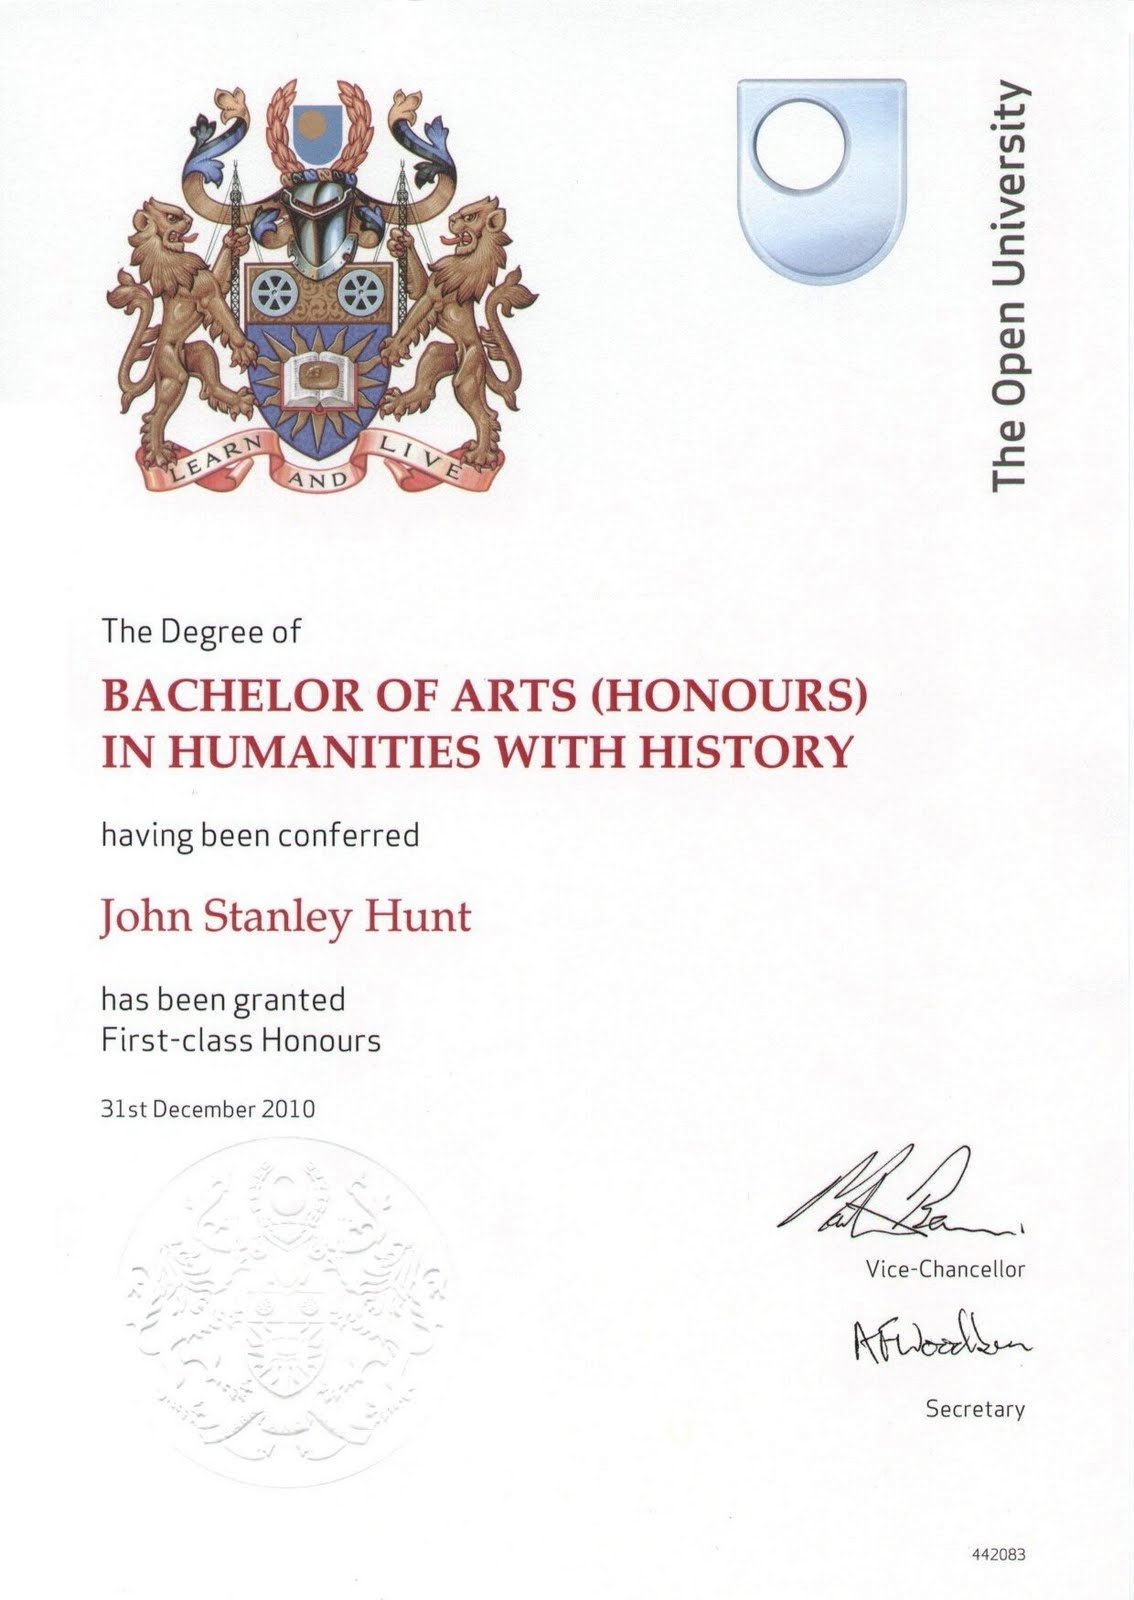 not  sxr207 at durham  degree certificate